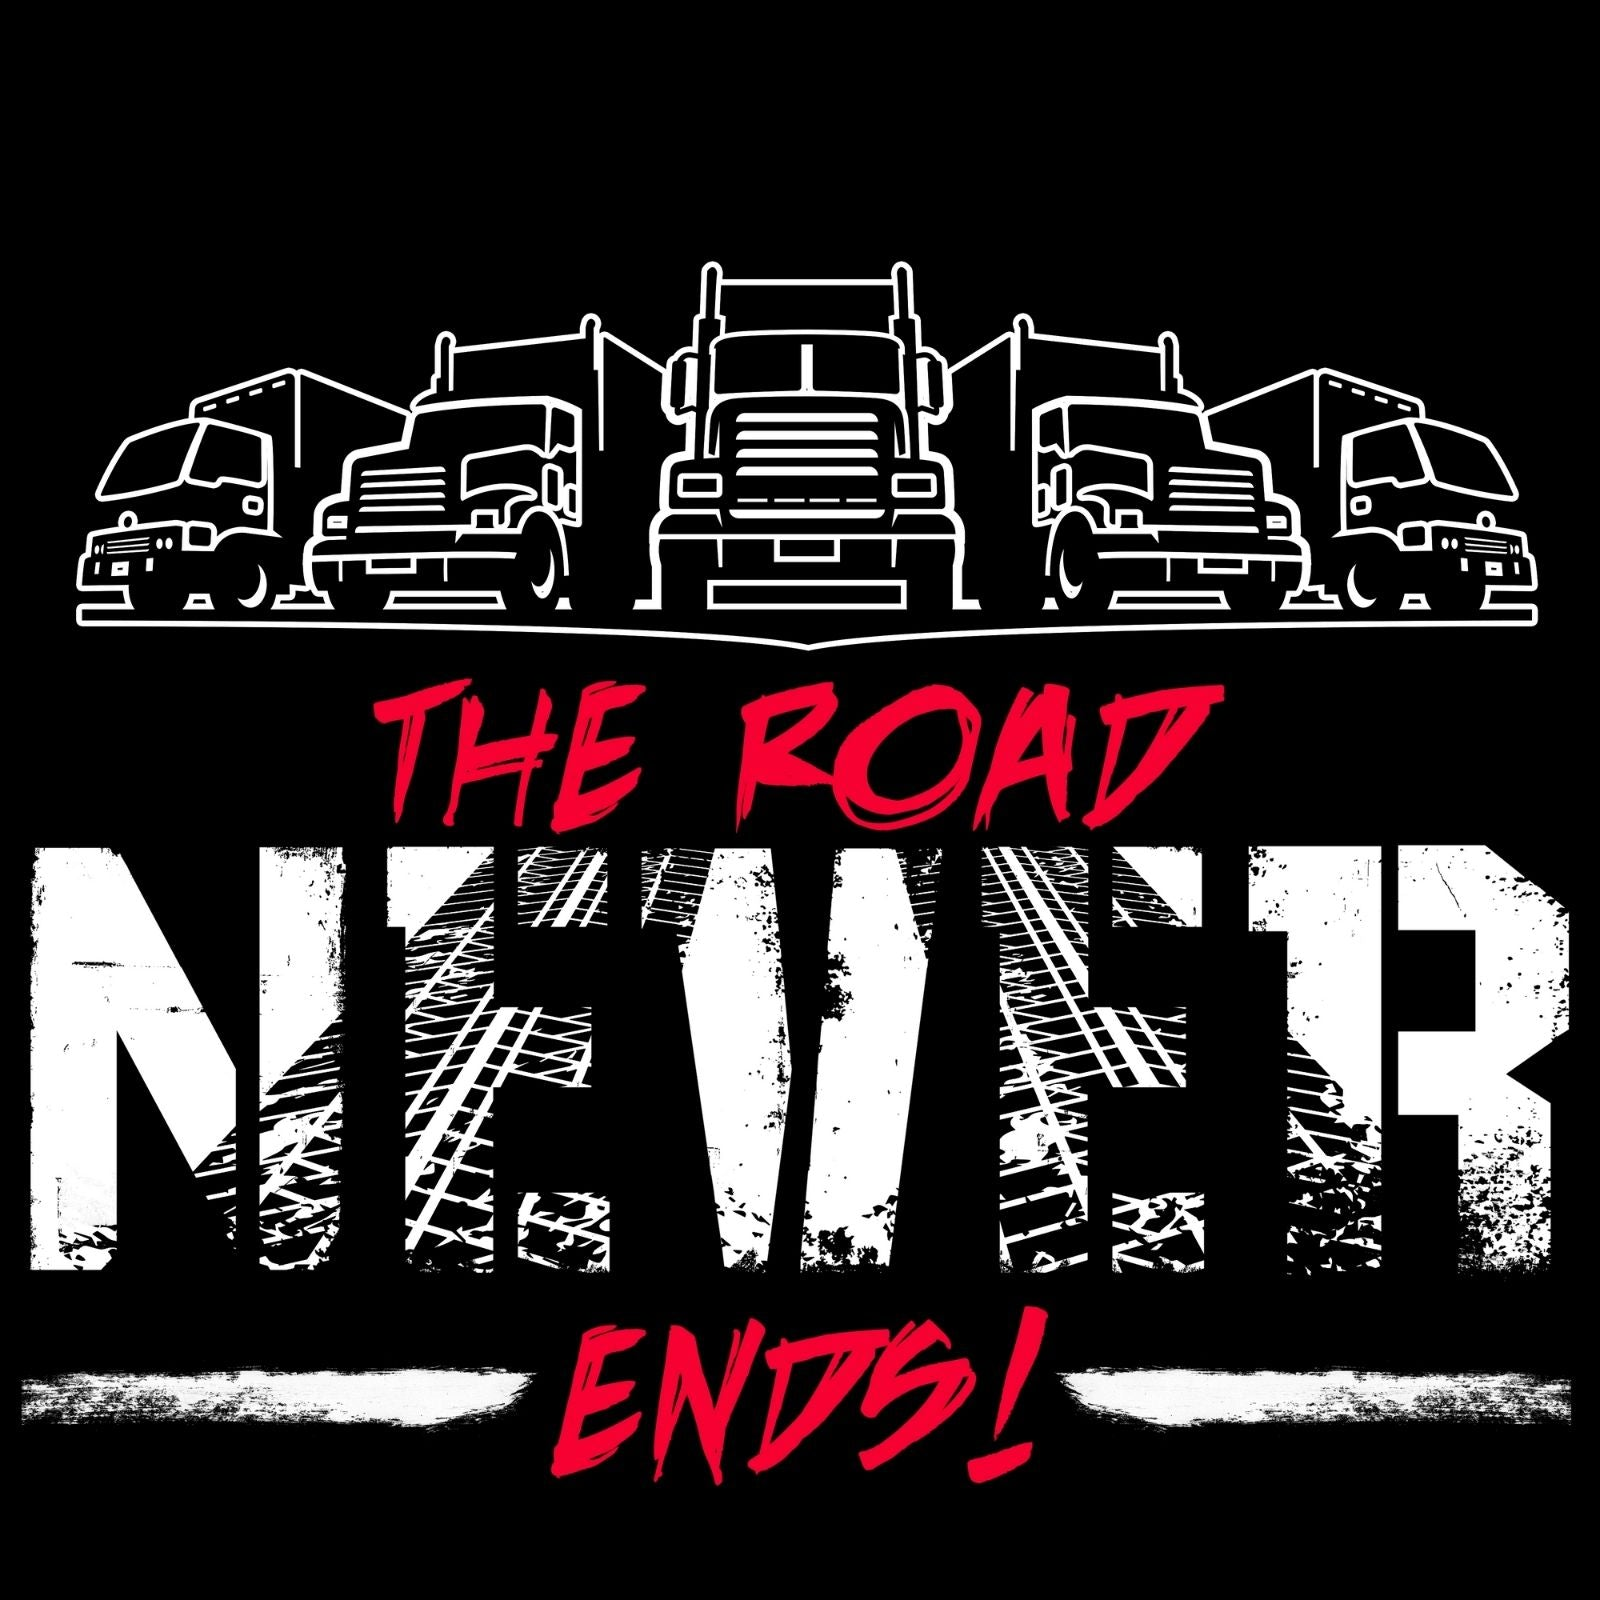 The Road Never Ends! - Bastard Graphics